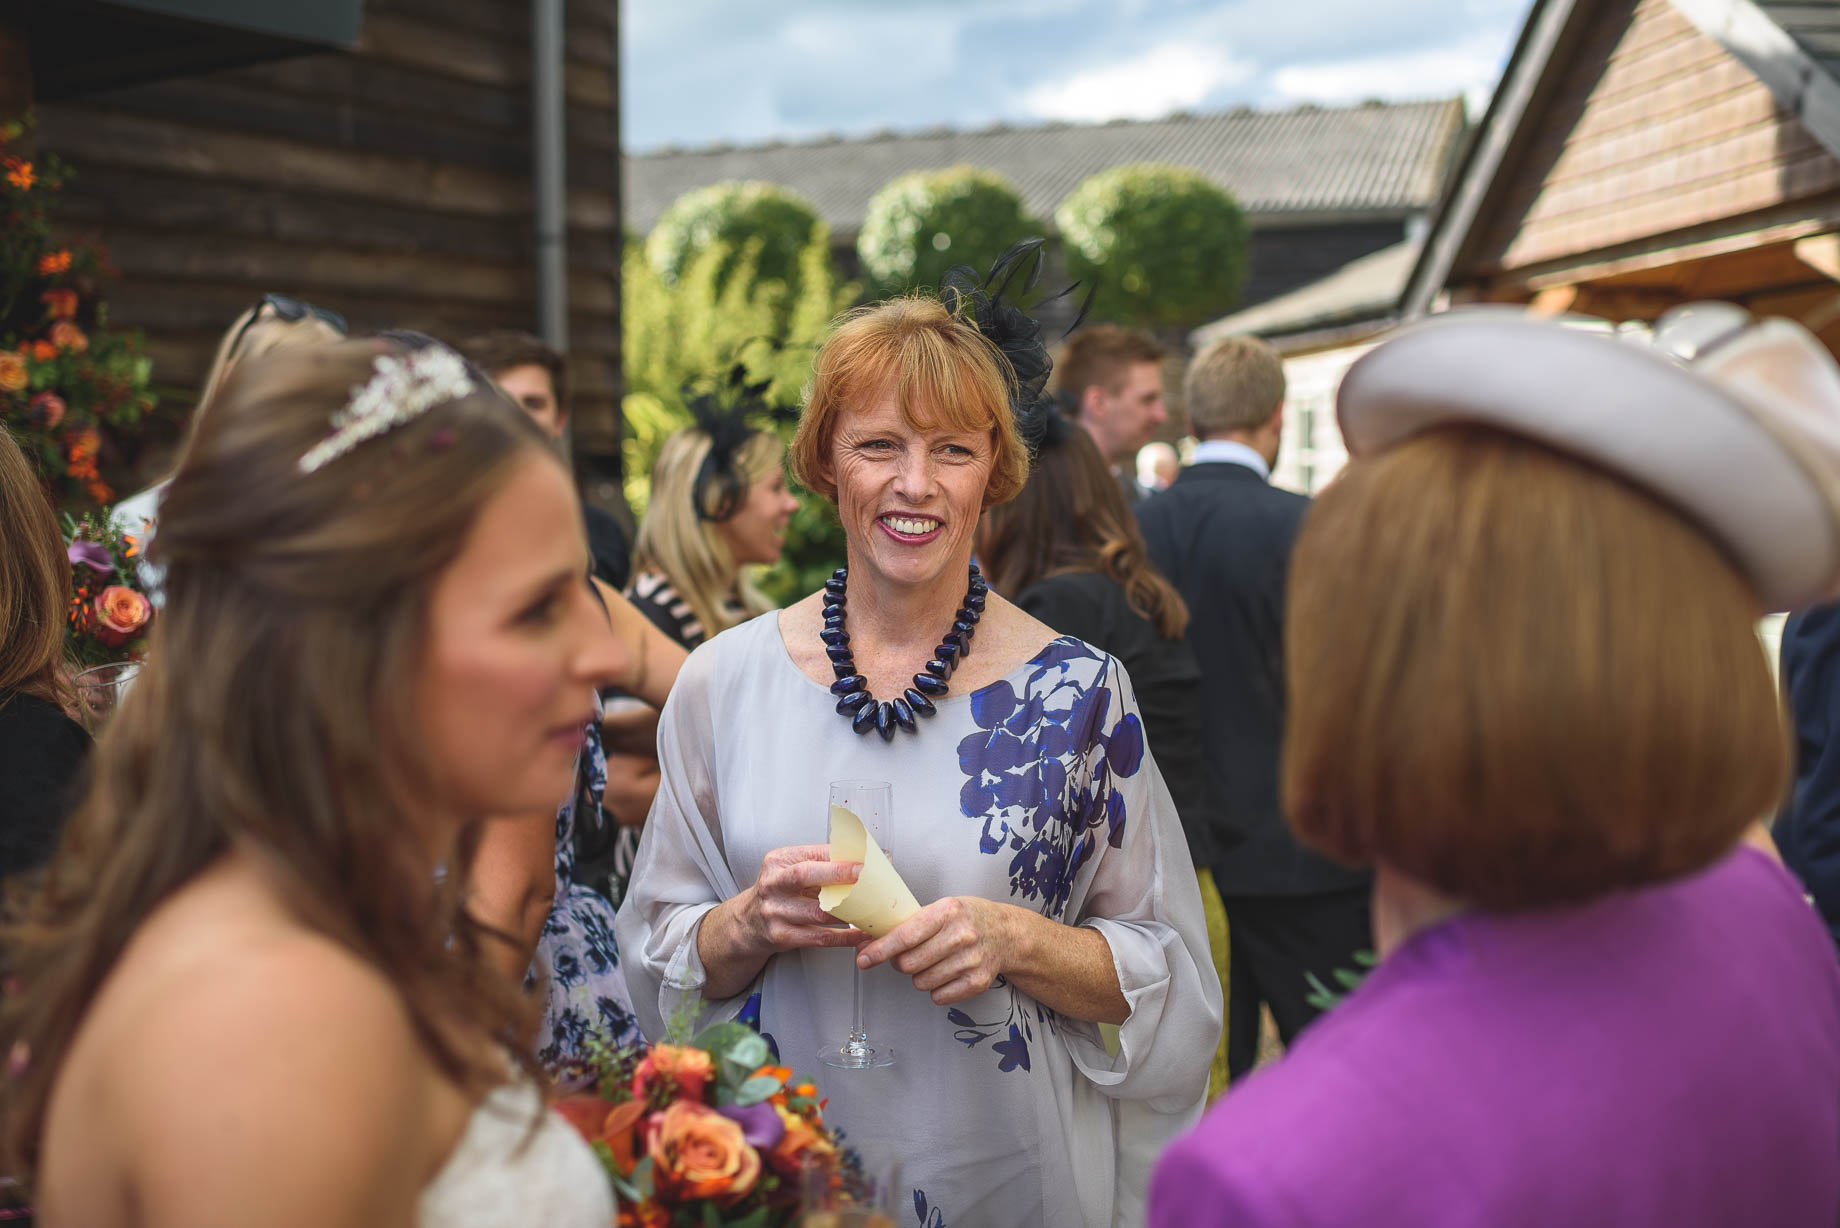 Gate Street Barn wedding photography - Guy Collier - Claire and Andy (84 of 192)